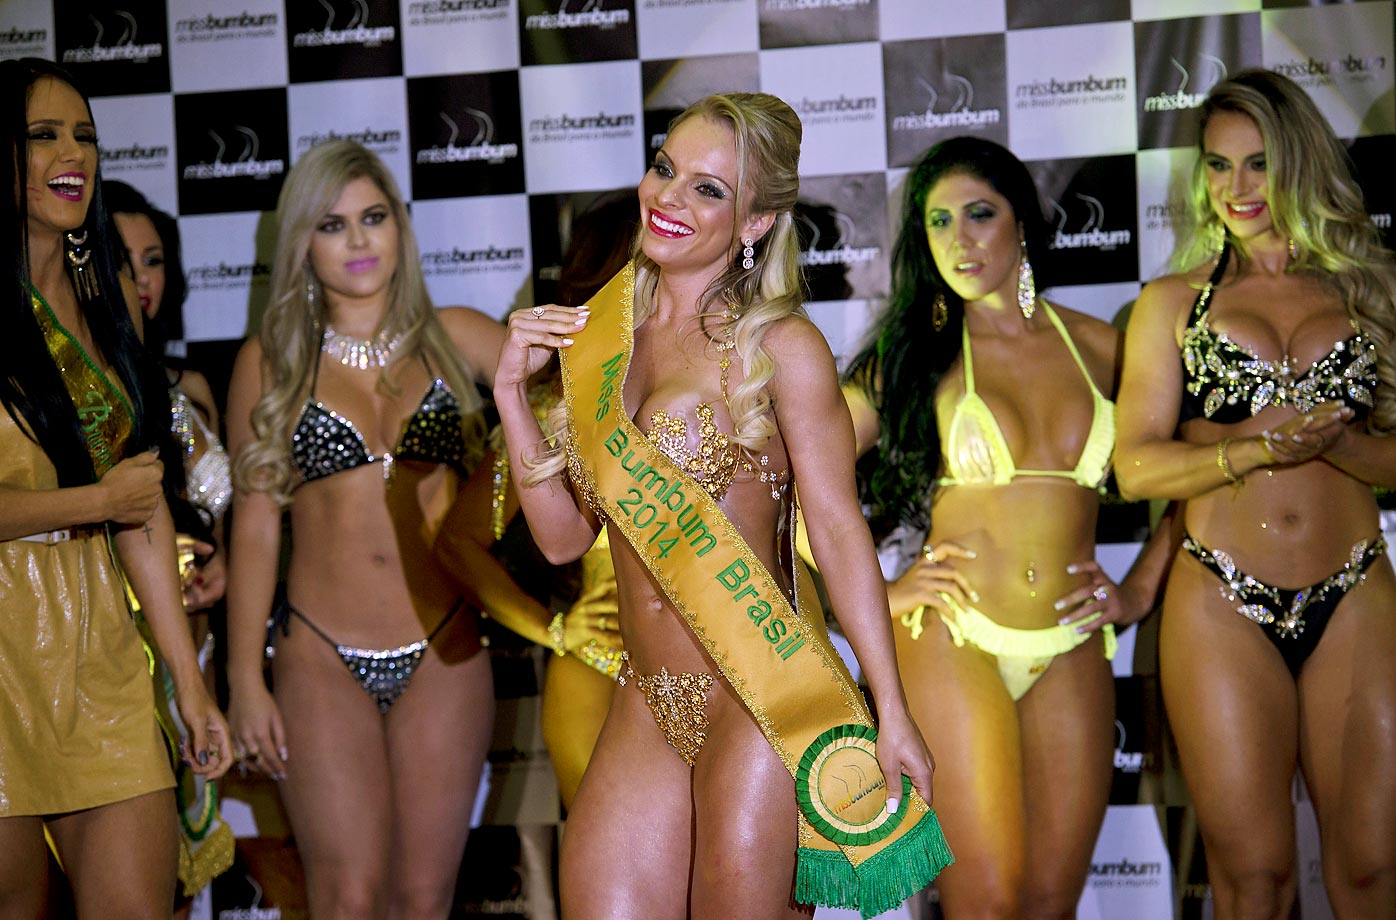 Indianara Carvalho after winning the Miss Bumbum Brazil 2014 pageant in Sao Paulo.  Carvalho, a curvy model from the south state of Santa Catarina, was crowned Miss Bumbum, a title rewarding Brazil's sexiest female derriere. You can't make this stuff up.